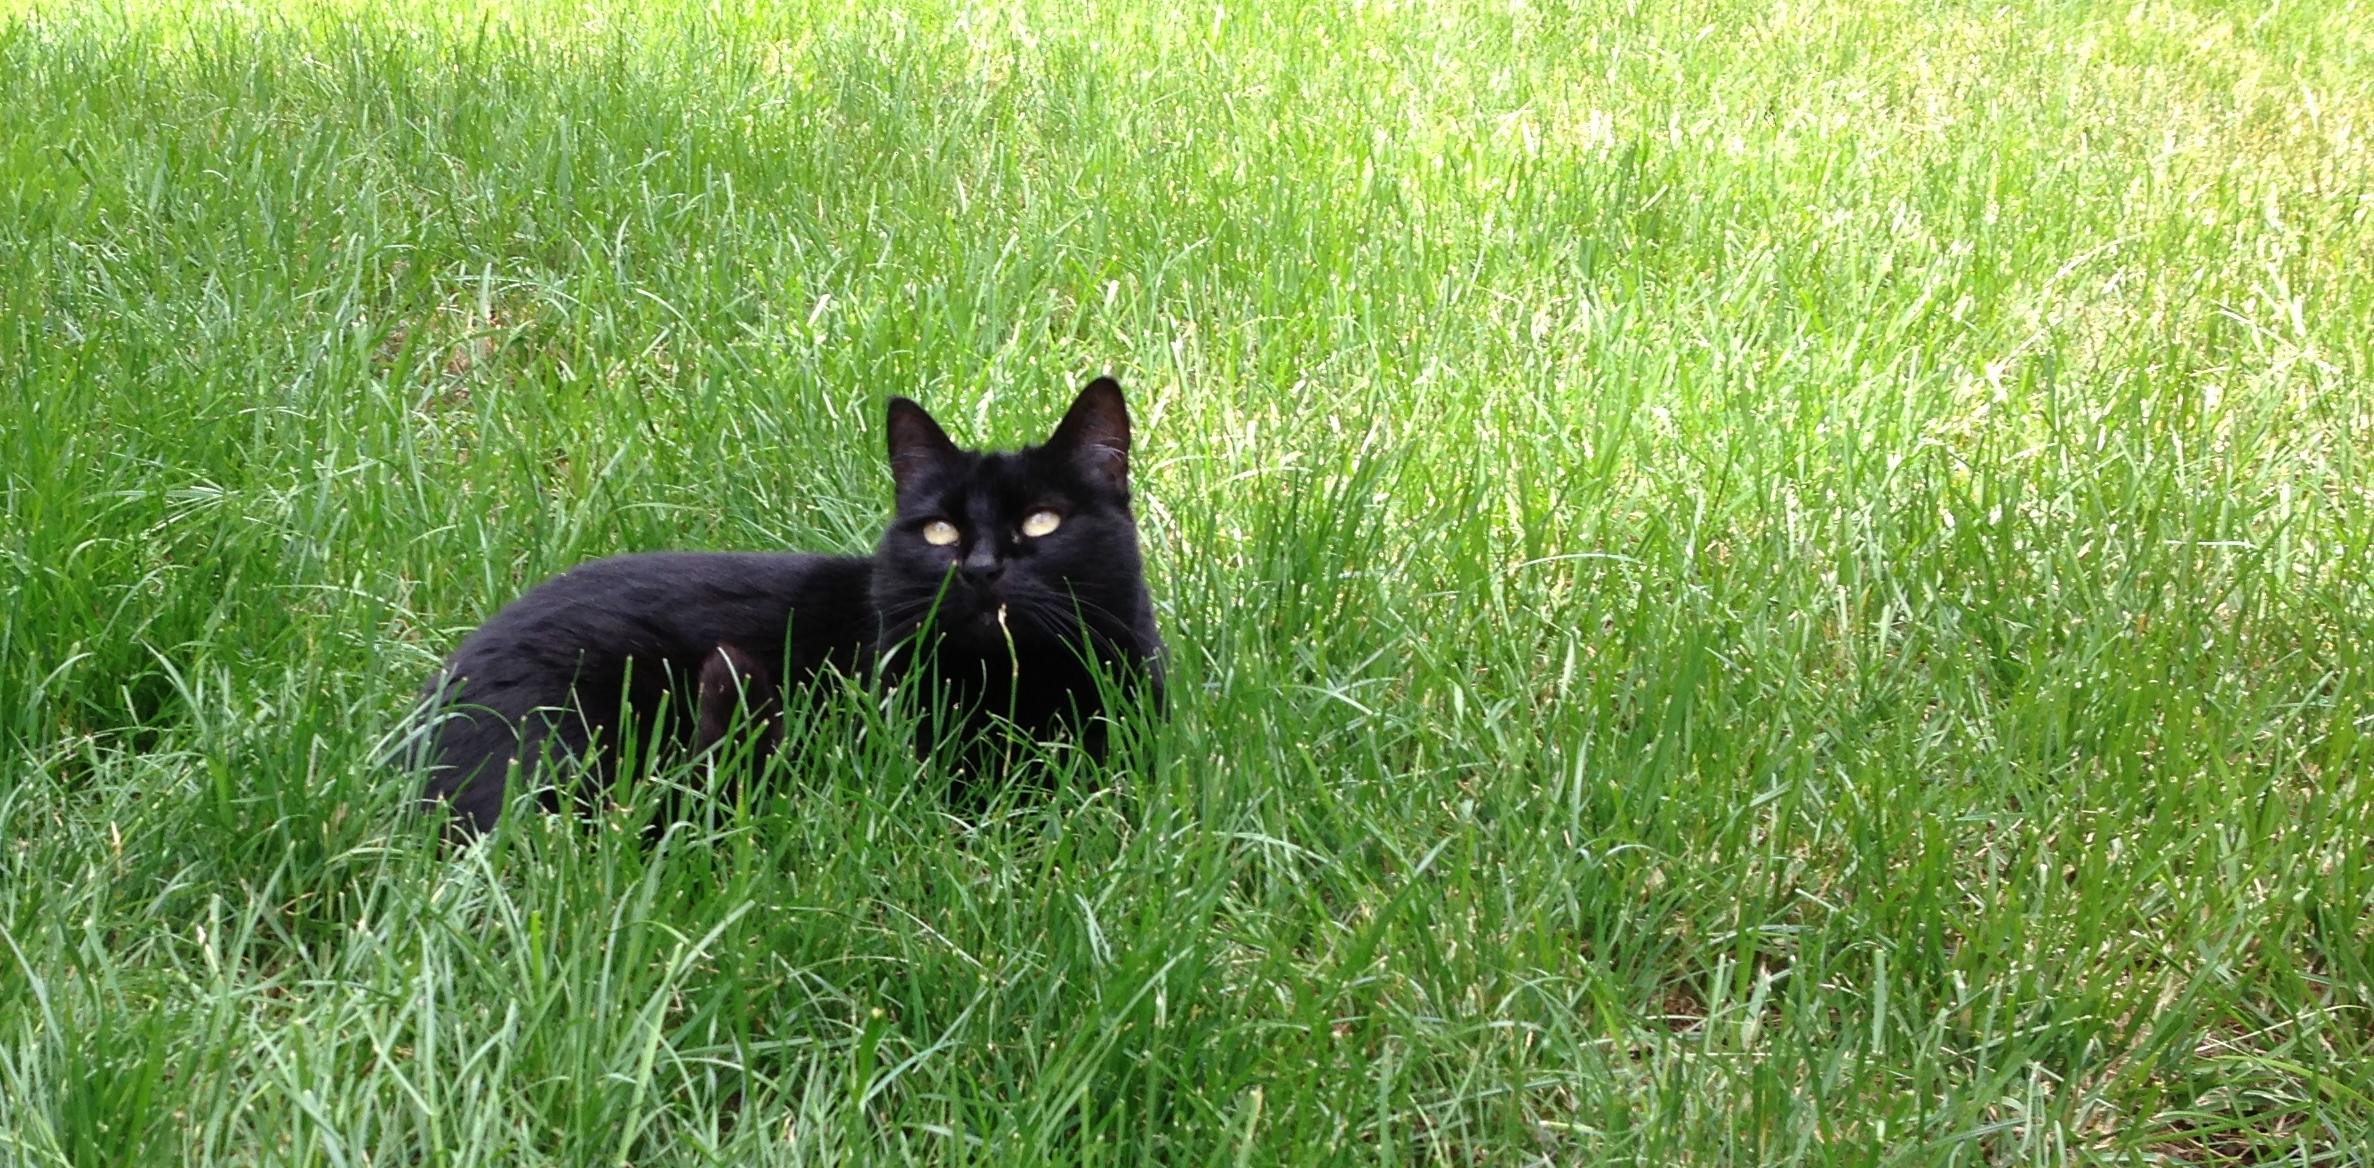 Kitters in the Grass